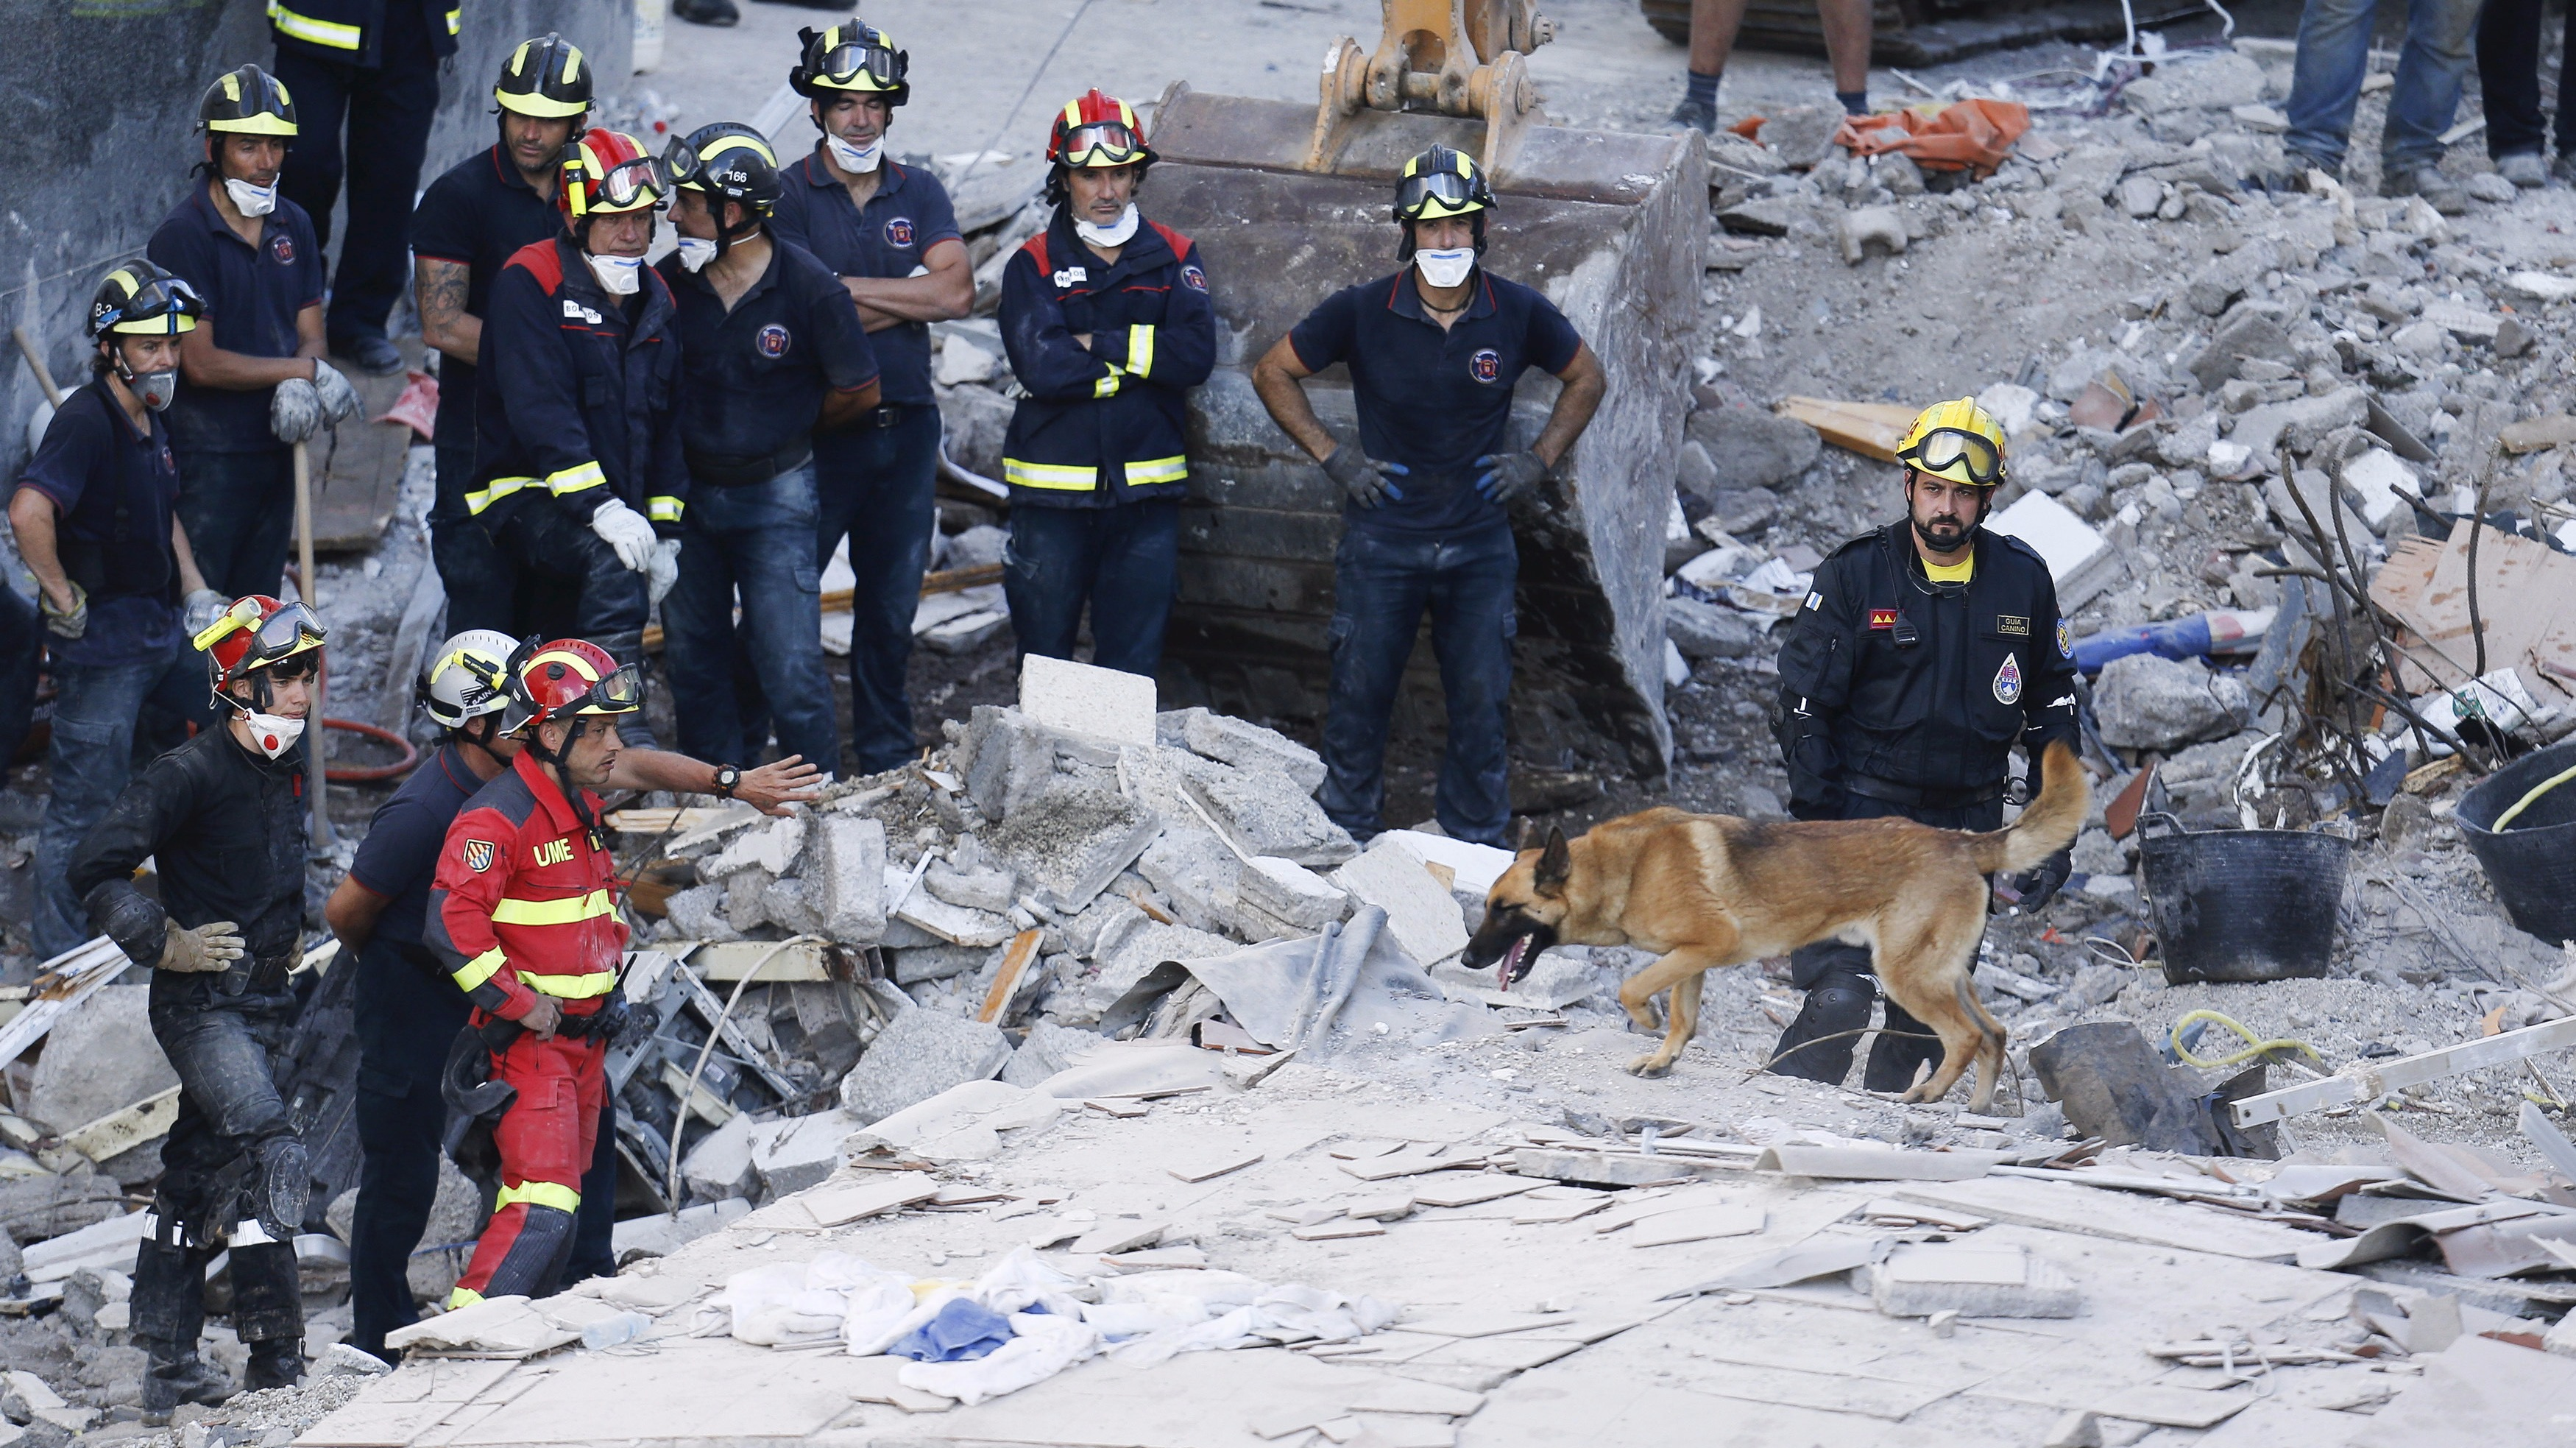 Reports: Six dead after Tenerife building collapse